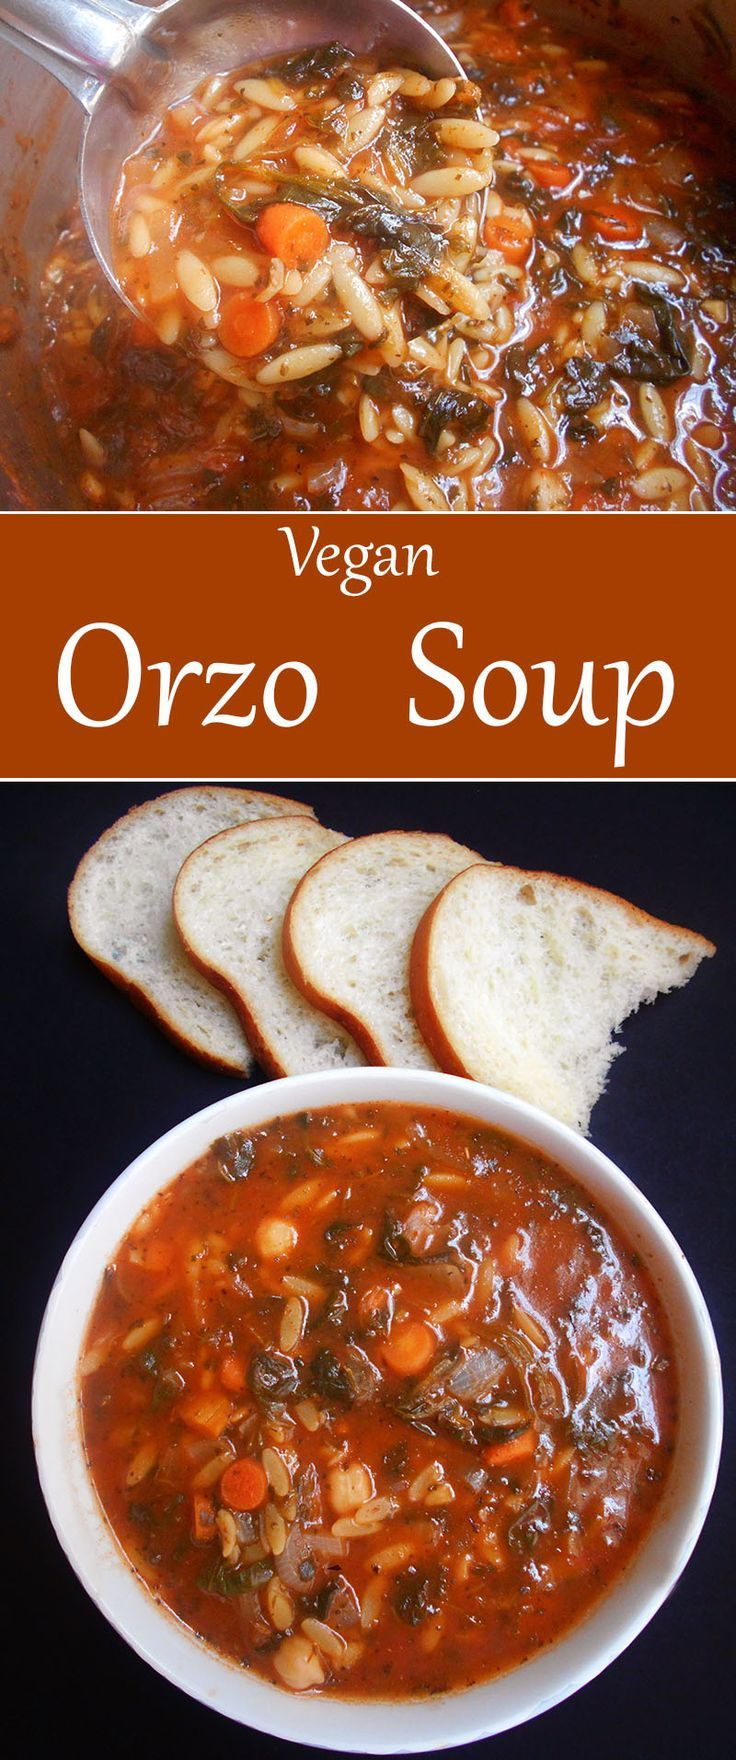 Make this hearty vegan orzo soup when you are looking for easy soup recipes. It is a healthy soup recipe that is perfect comfort food for cold winter nights. Perfect meal idea for vegetarians.